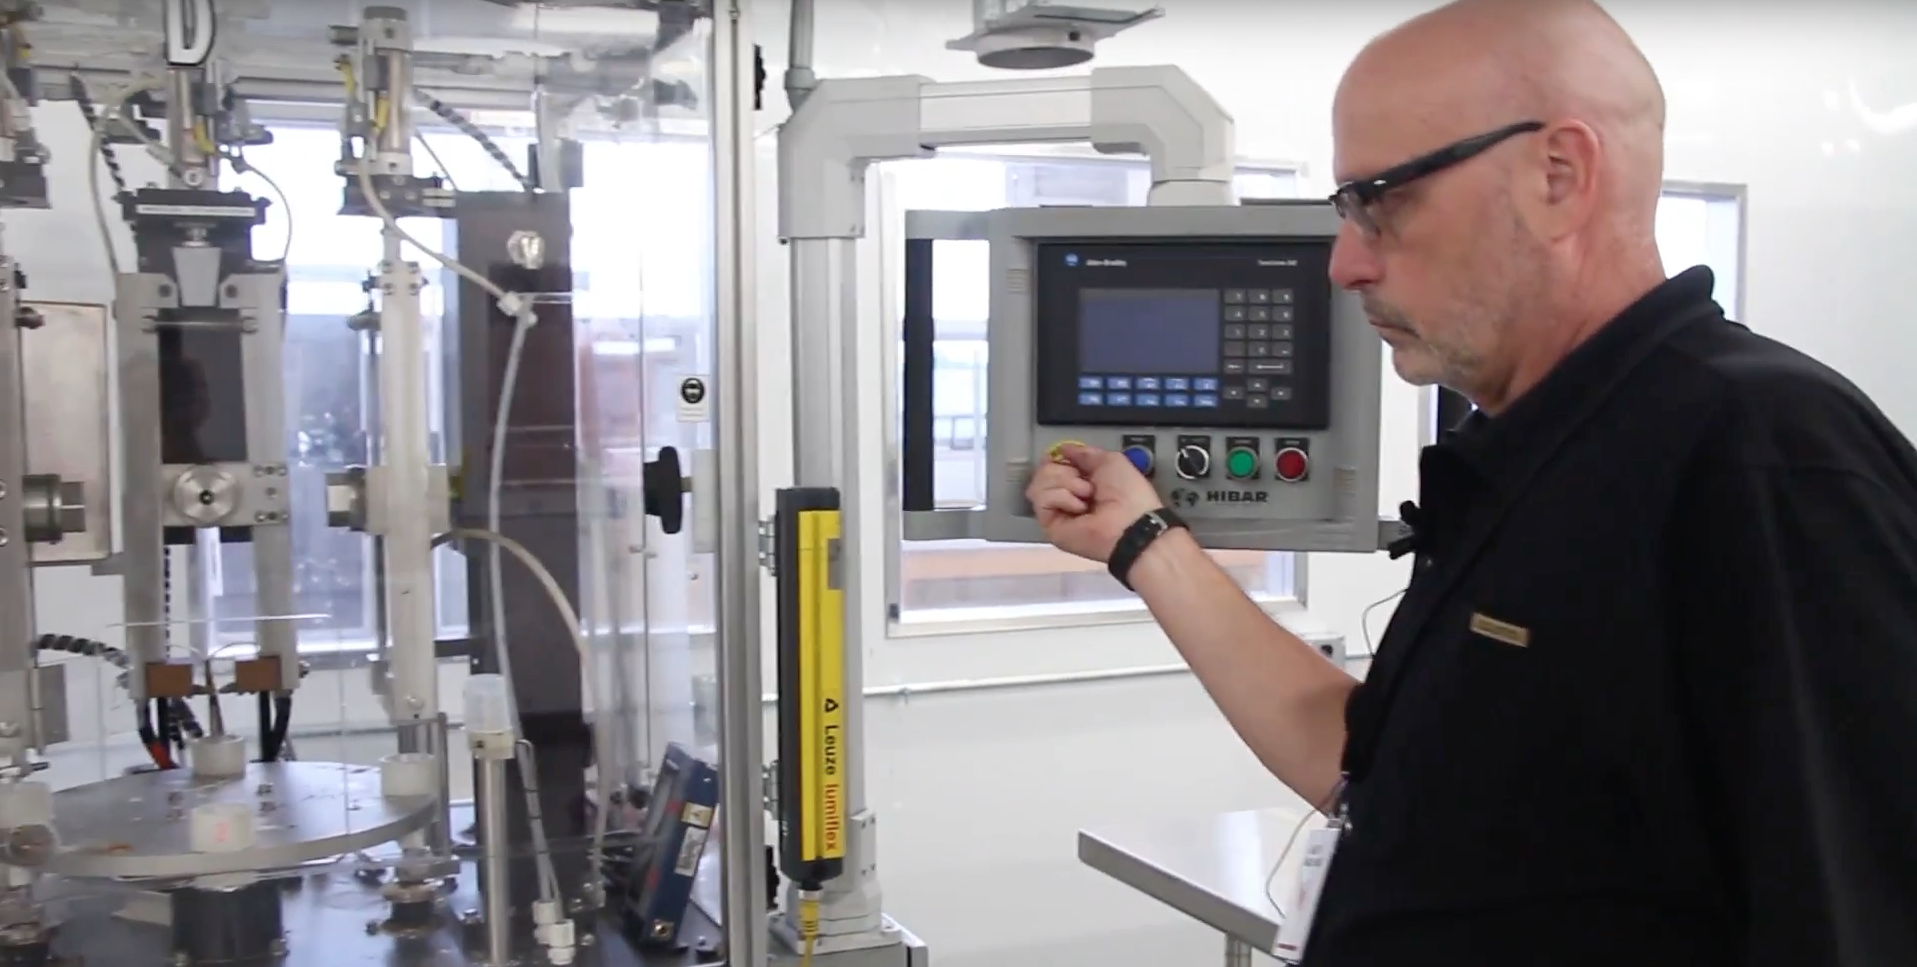 Battery and energy storage consultant Andy Naukam demonstrates equipment at the Kodak Cell Assembly Center. Pic: Kodak/YouTube.